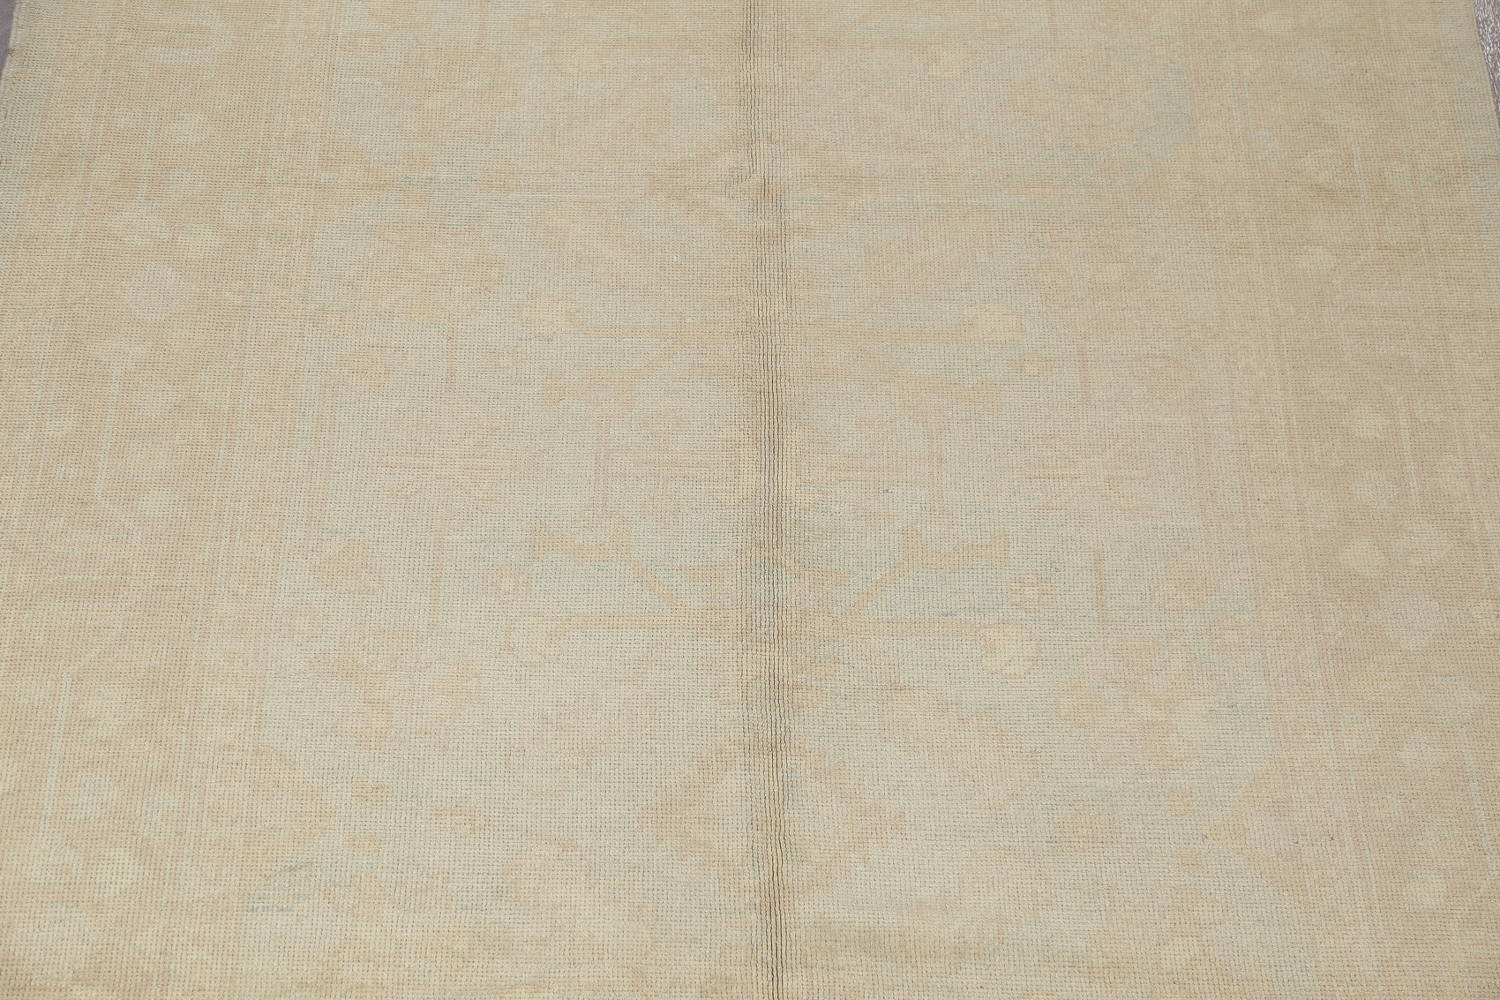 Vegetable Dye Muted Pale Blue Oushak Turkish Hand-Knotted Runner Rug 7x17 image 4